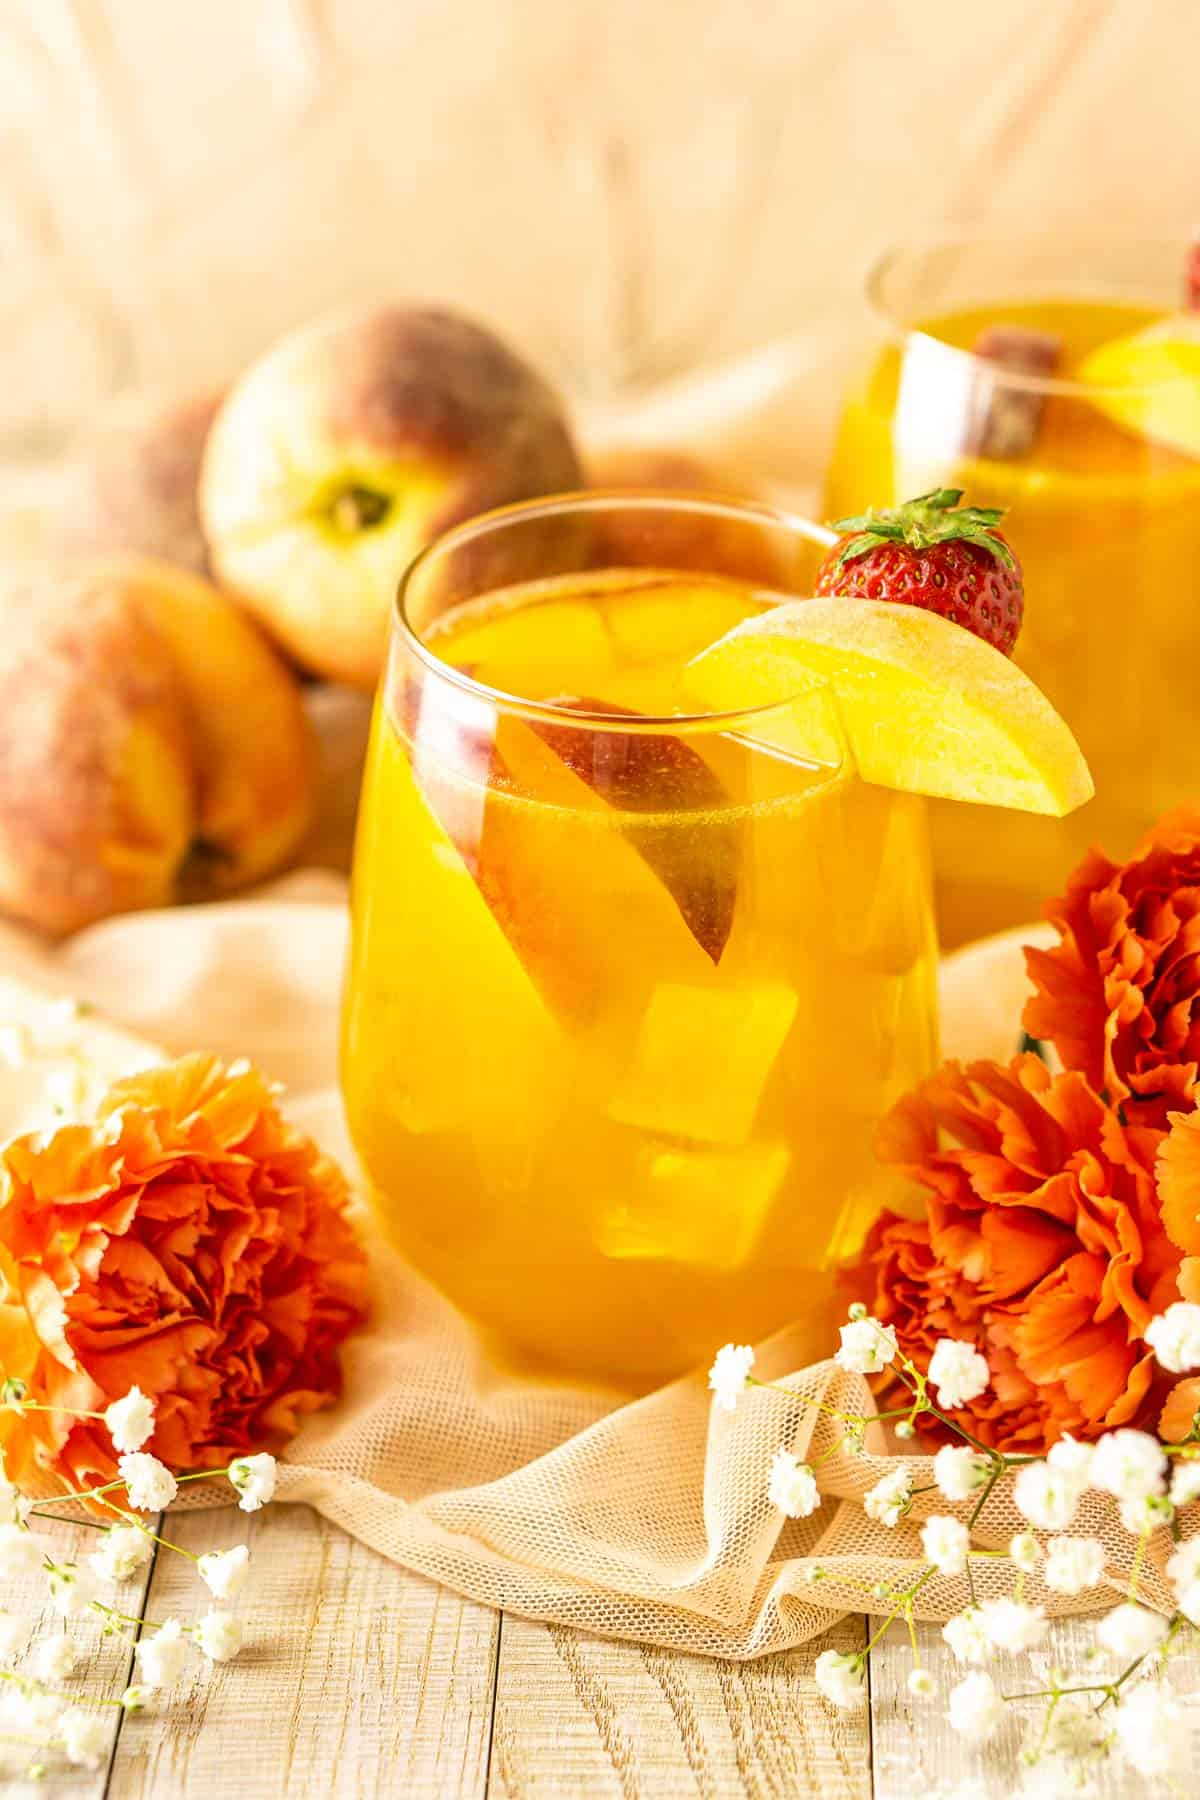 Two glasses of peach sangria with flowers in front of them and fresh peaches in the background.